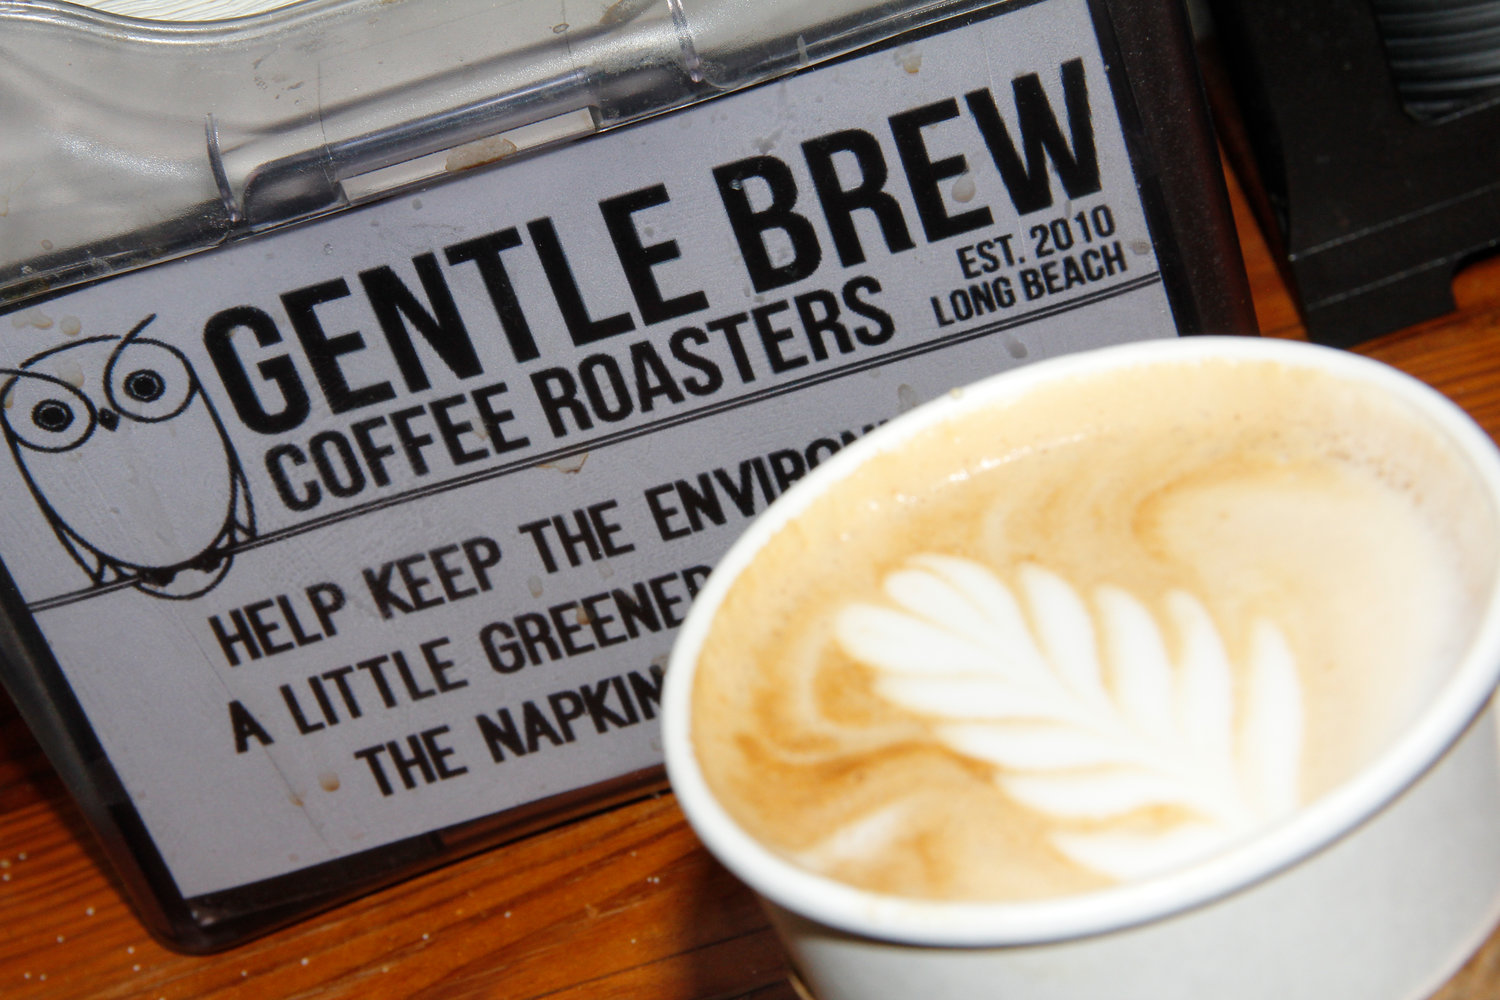 Gentle Brew's boardwalk location, pictured, was also closed after the state seized its on East Park Avenue business on June 4. Both locations have since been reopened.